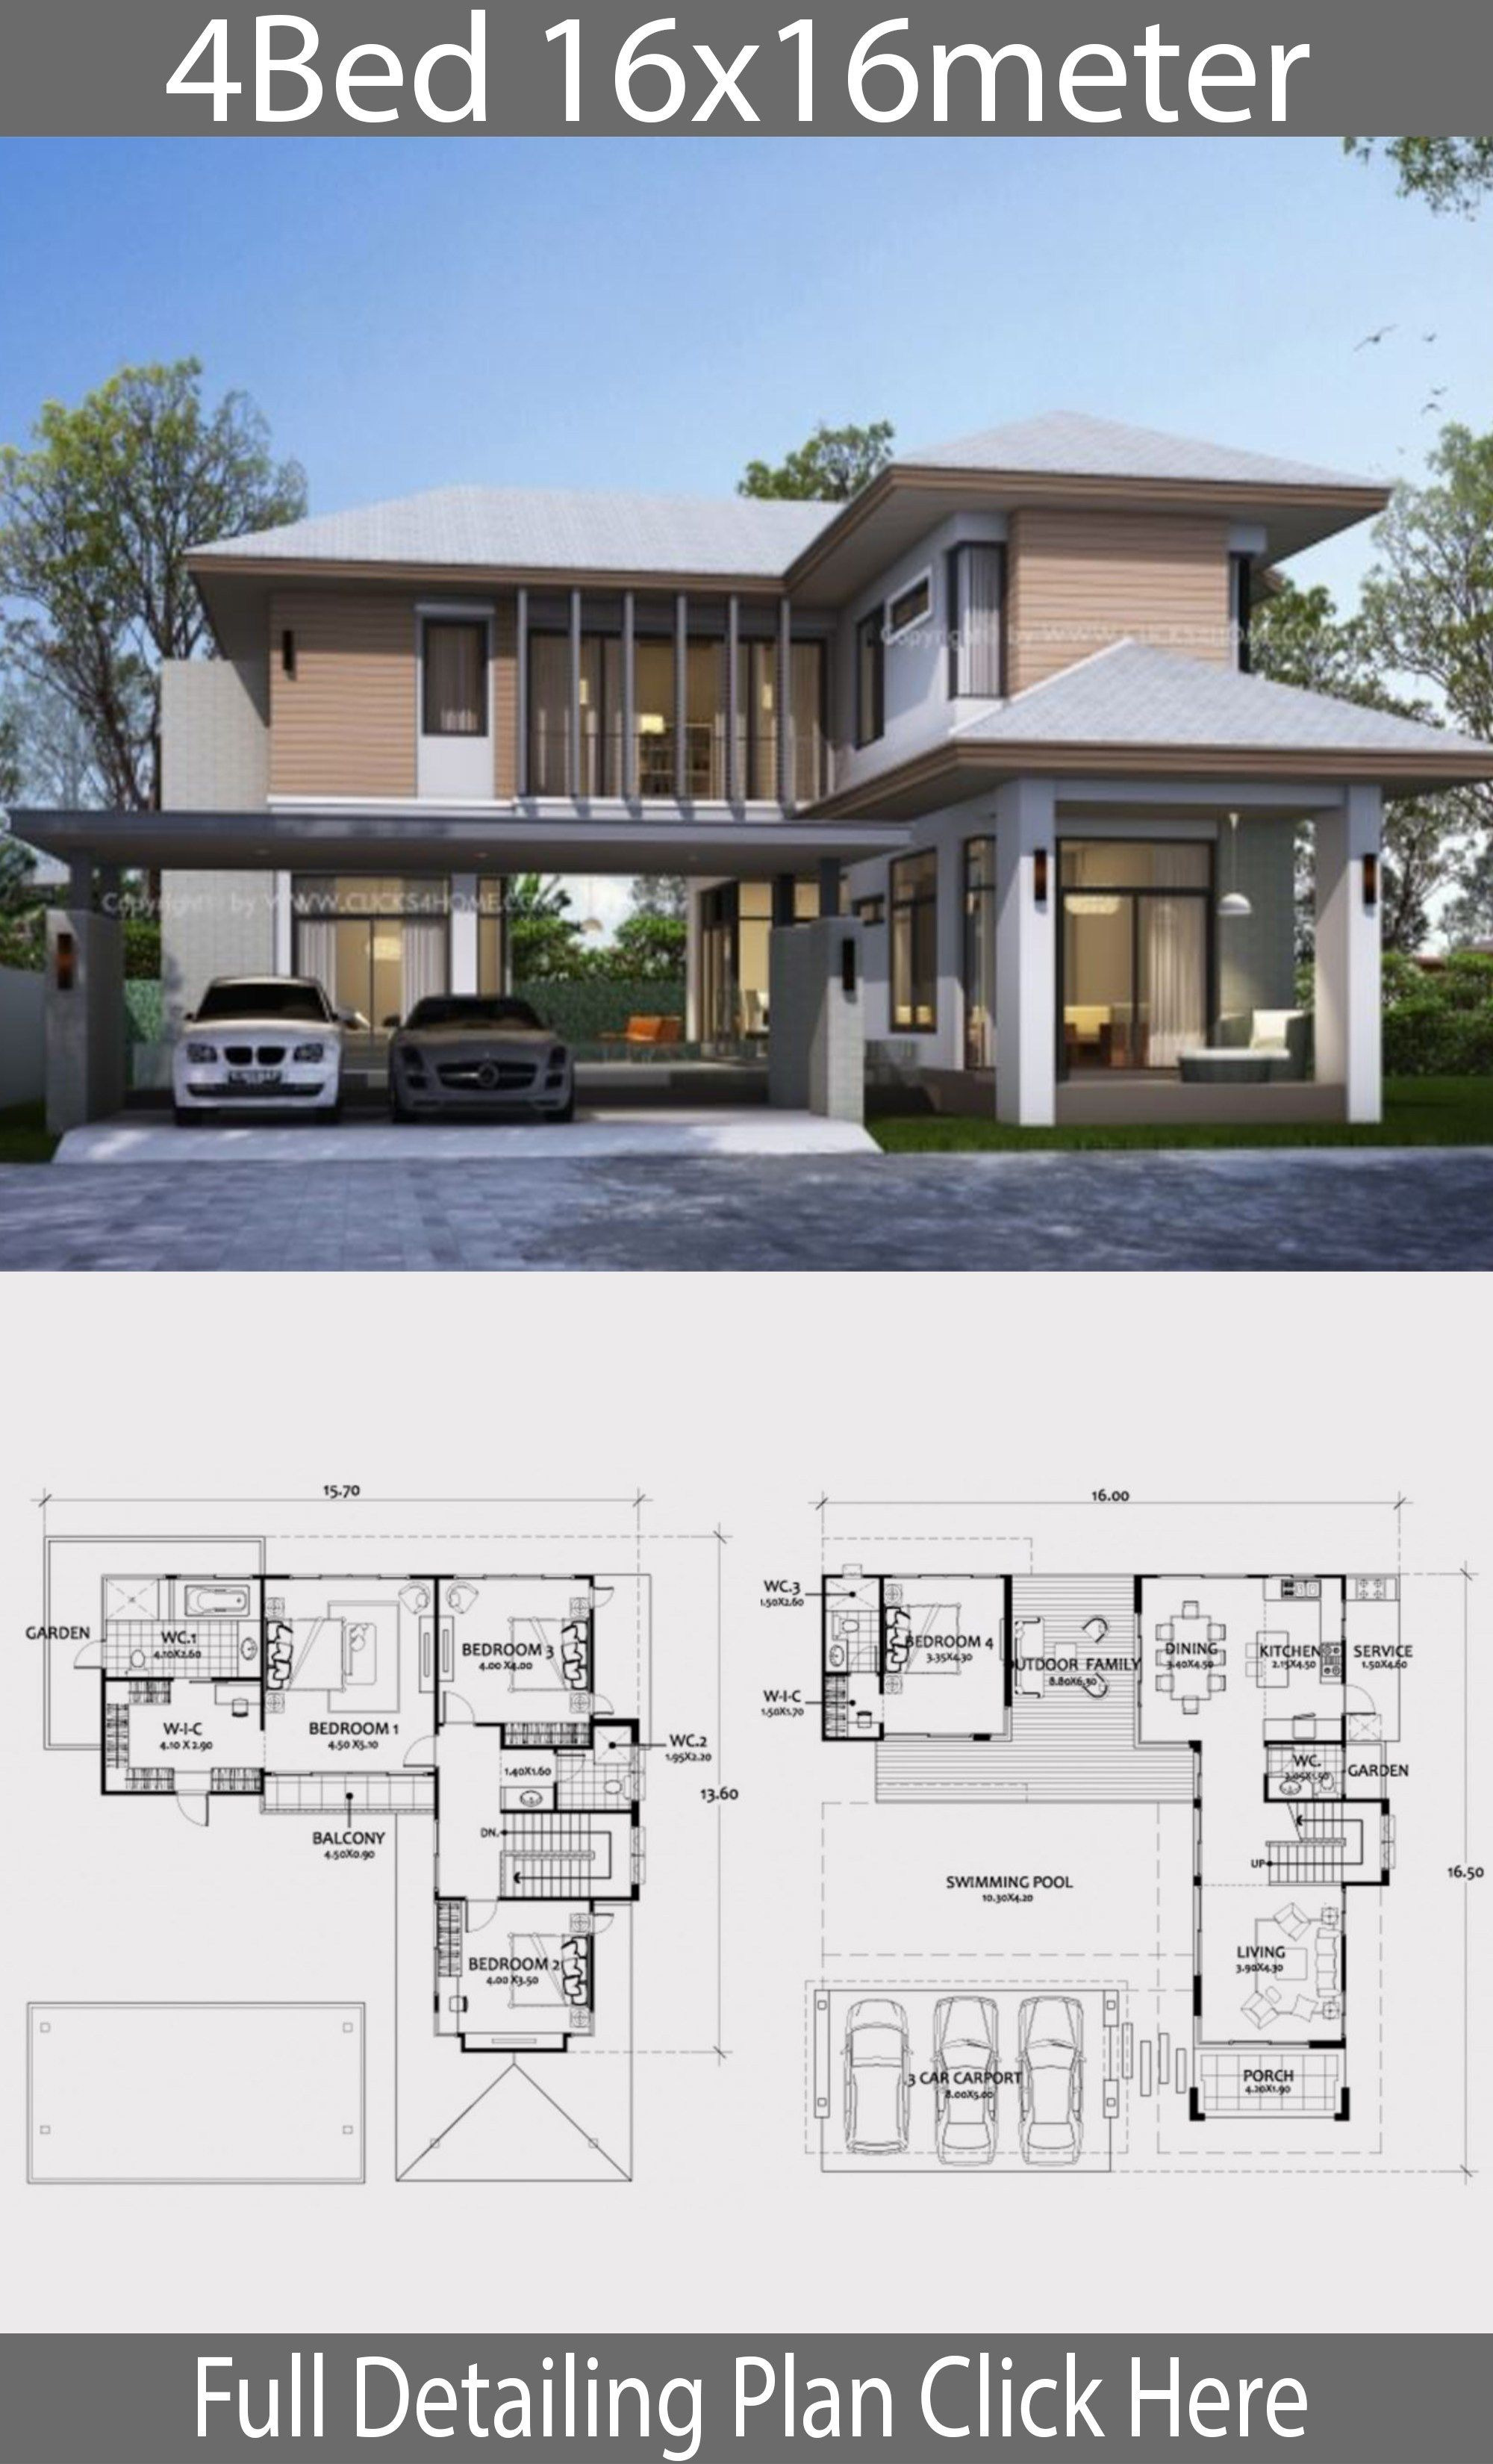 Contemporary Home Designs Floor Plans Elegant Home Design Plan 16x16m with 4 Bedrooms